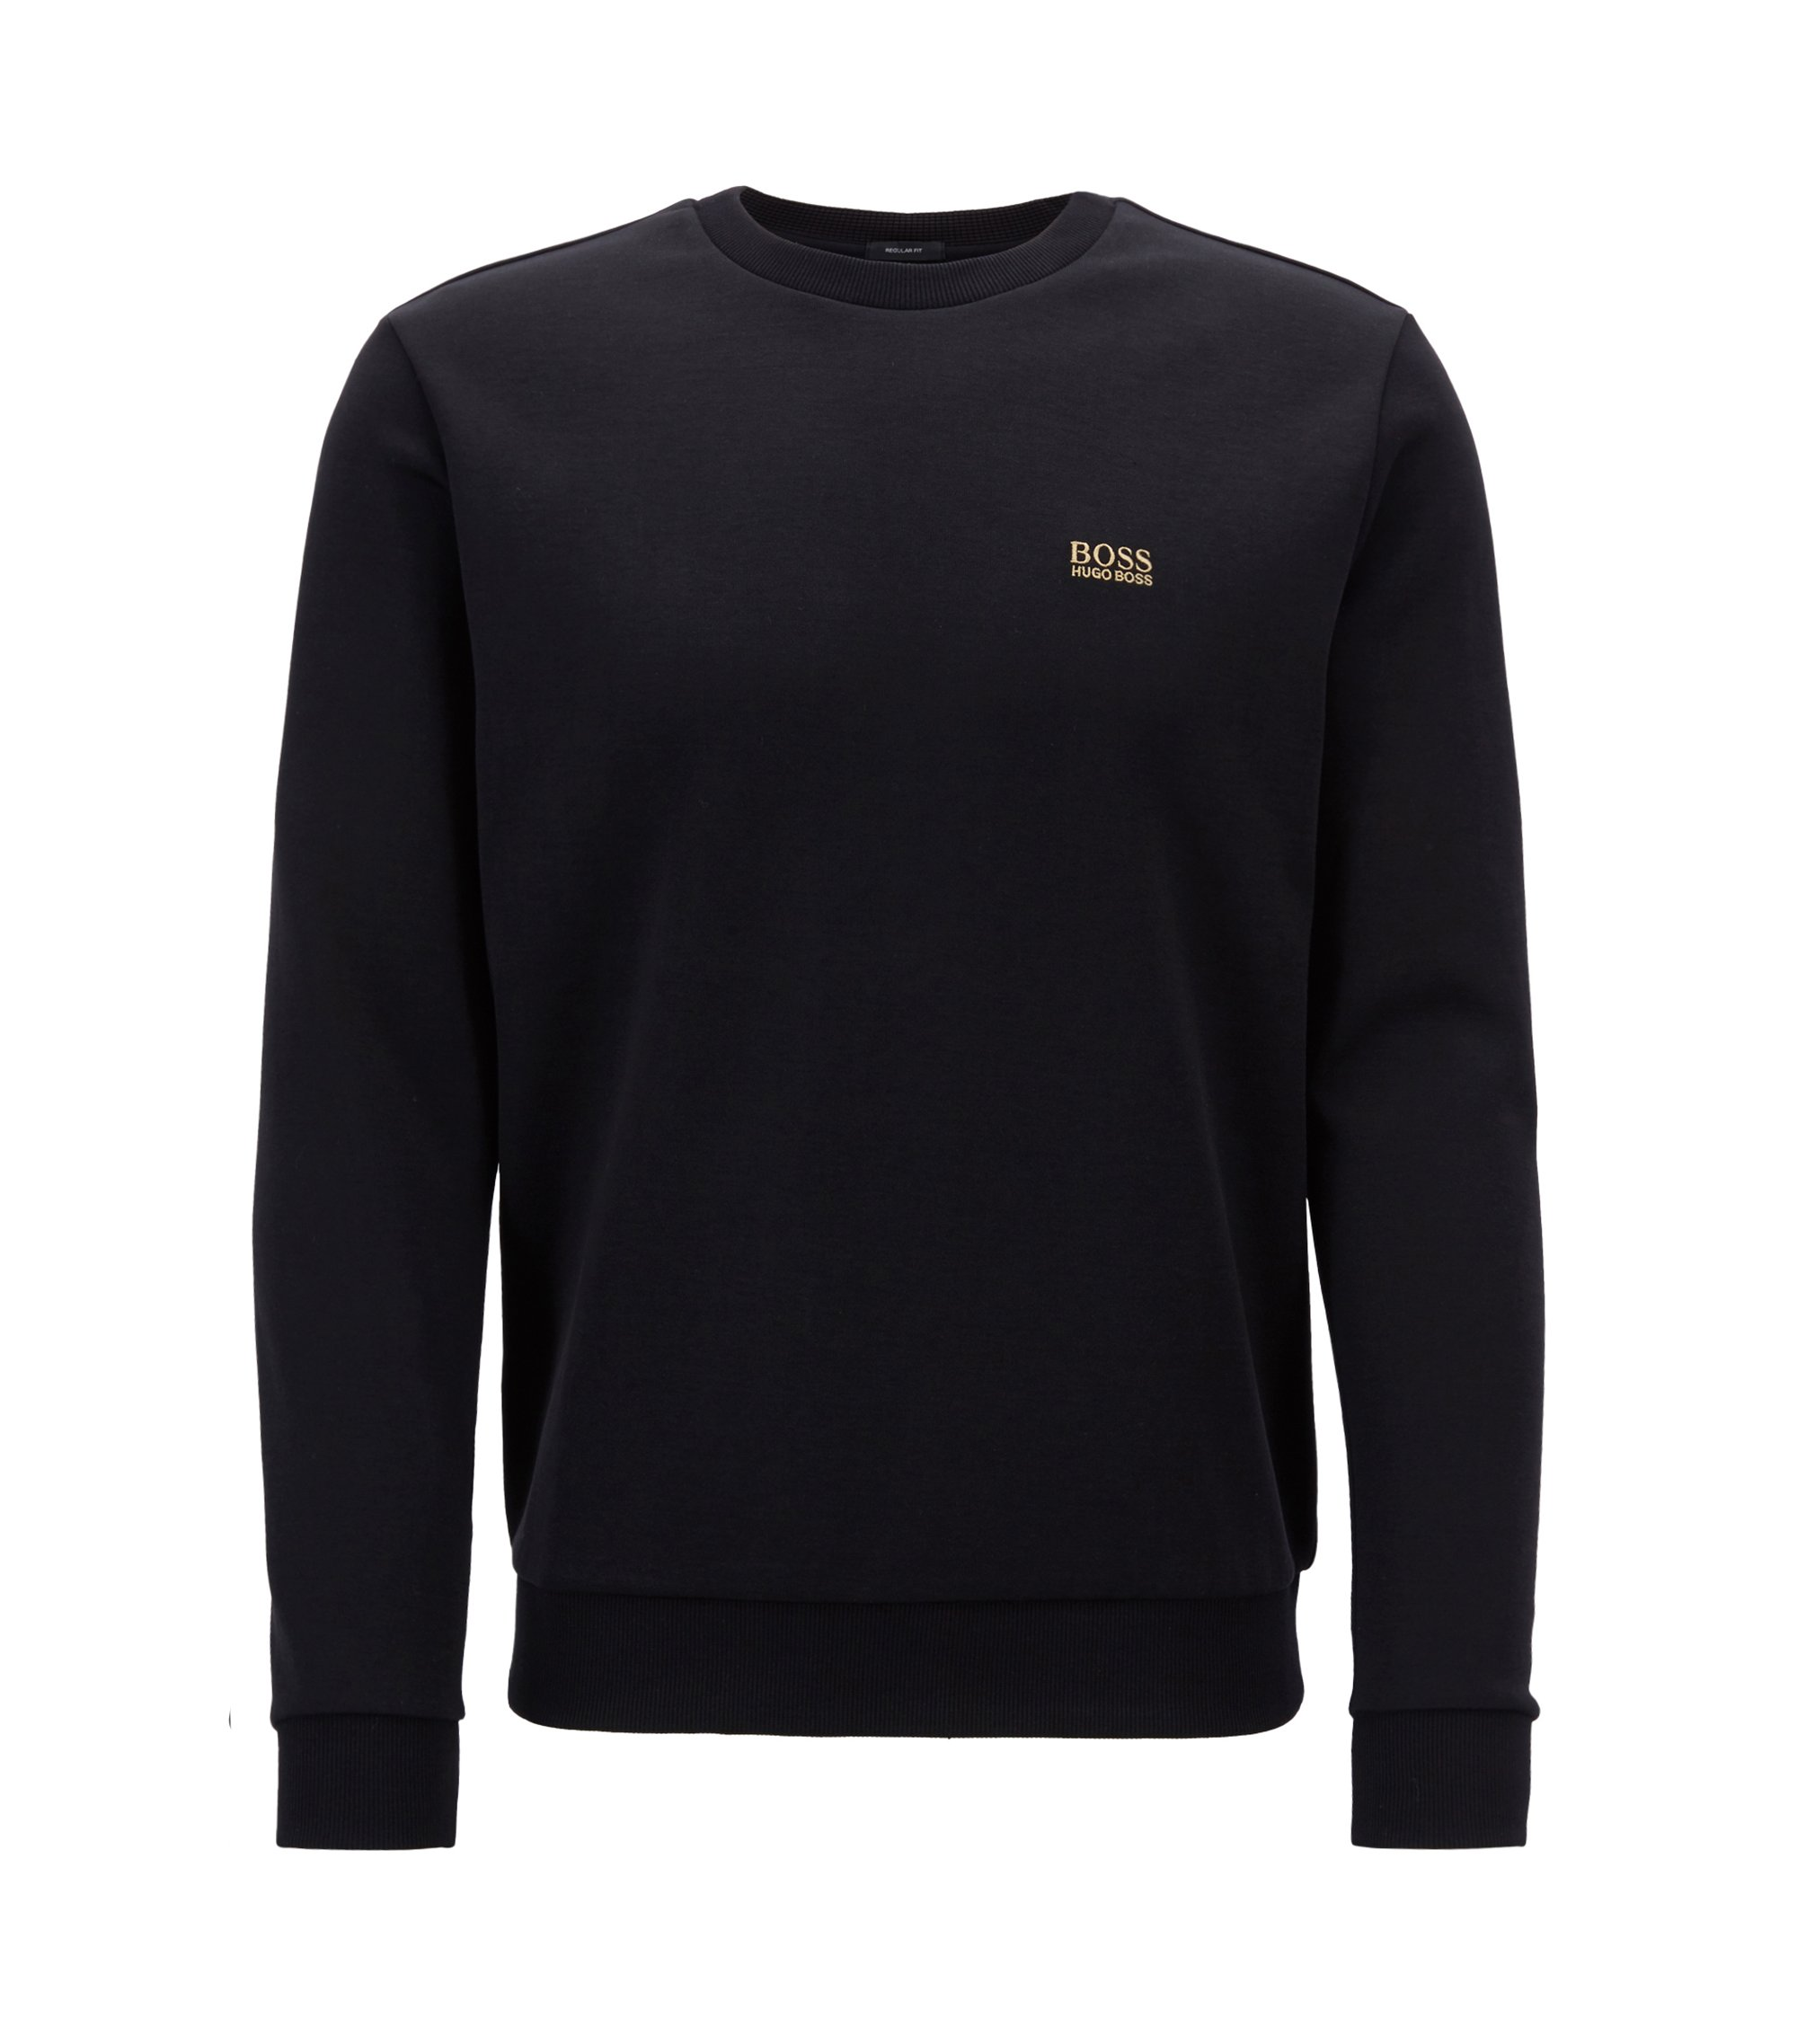 Crew-neck sweatshirt in a double-faced cotton blend, Black